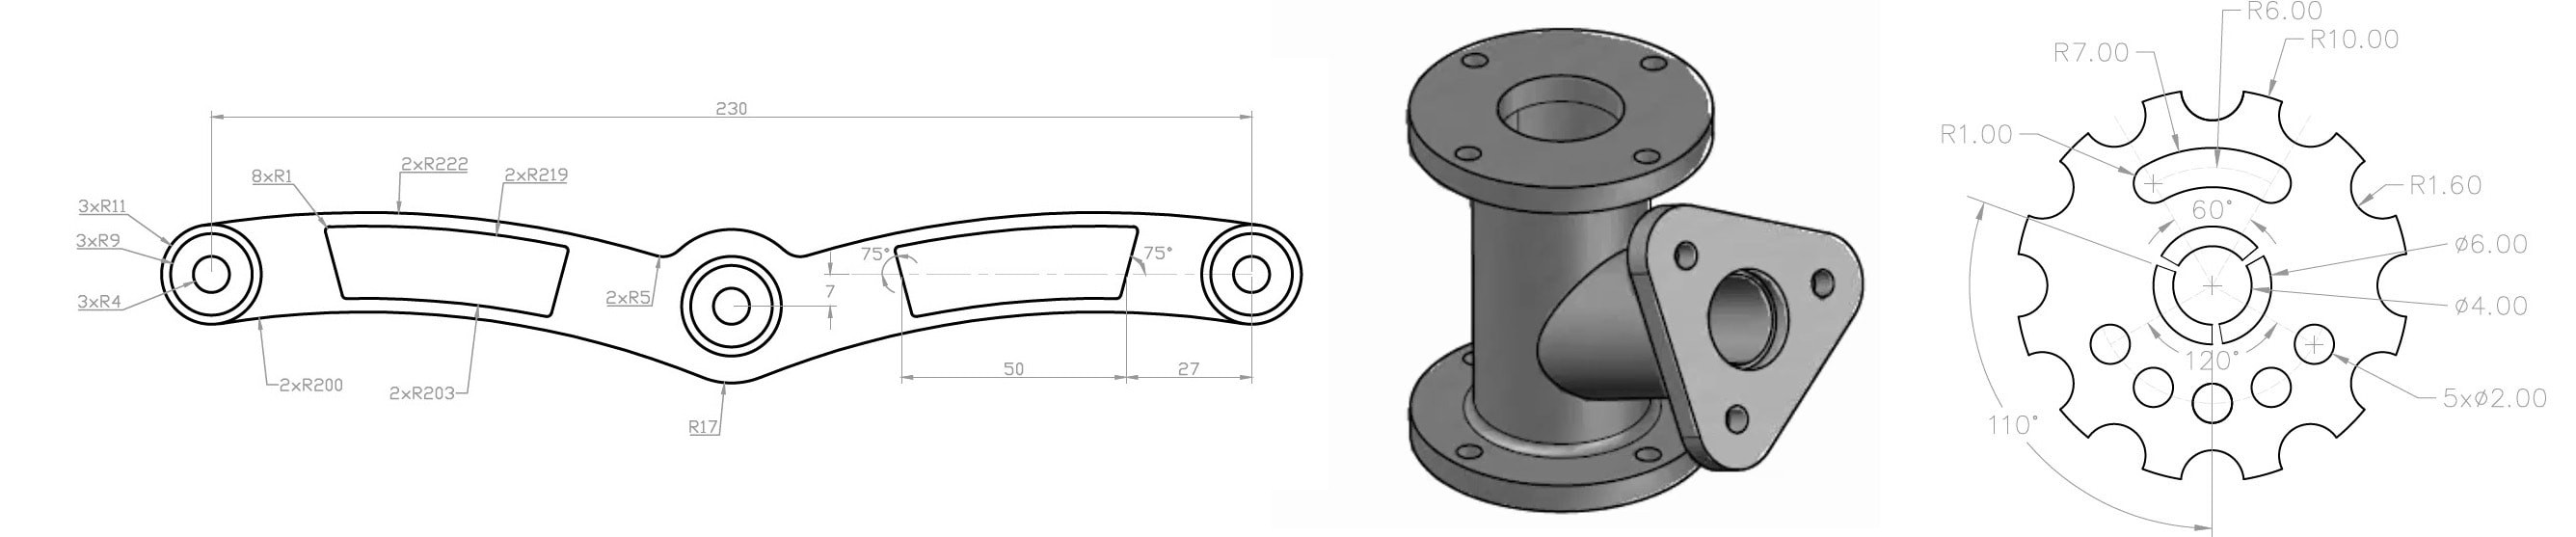 AutoCAD 2D and 3D practice drawings   SourceCAD